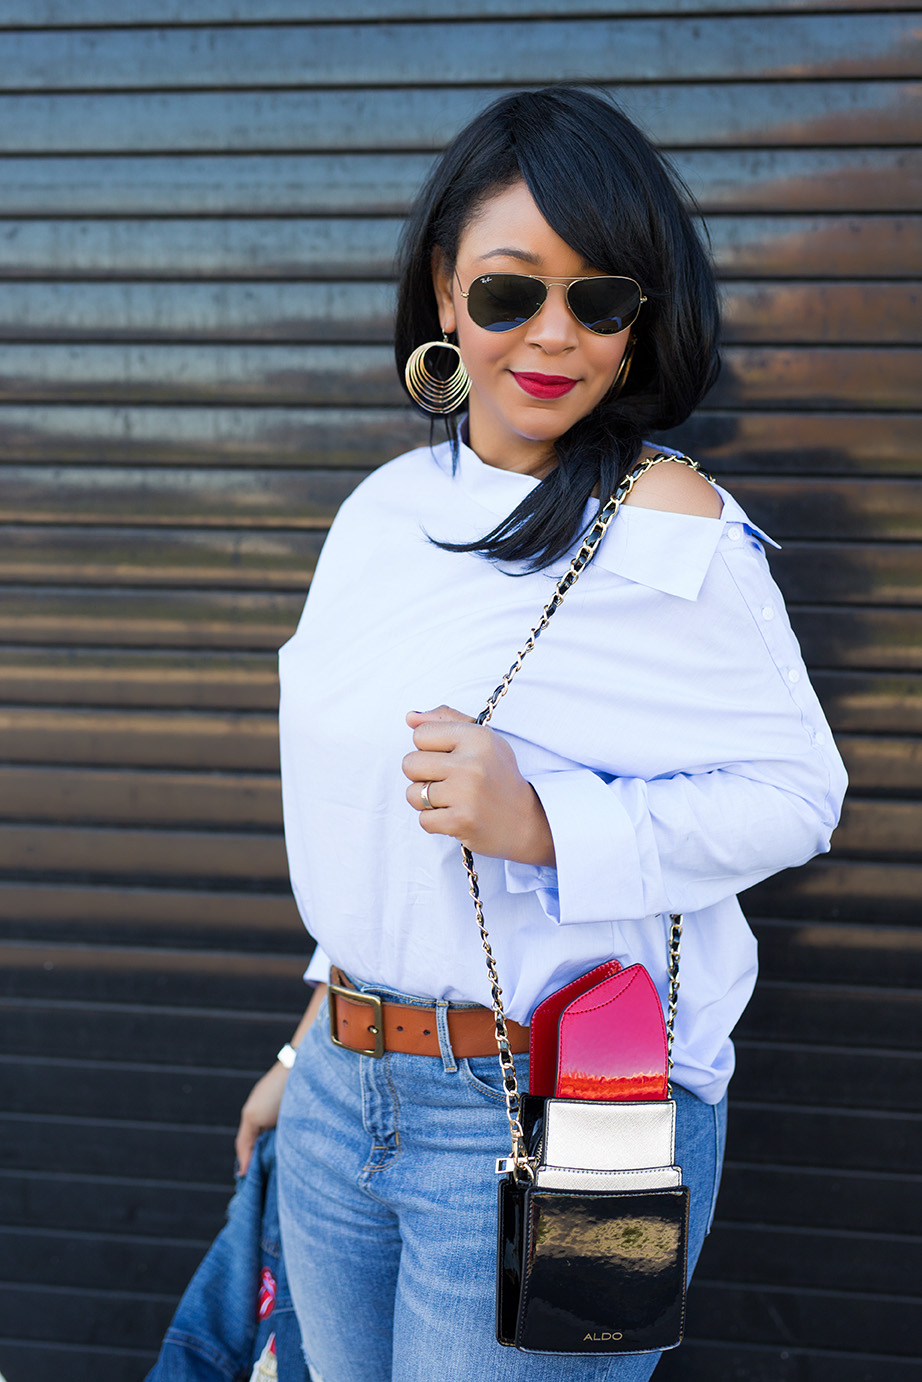 Finding fun this February - What I'm Wearing: charming Charlie Waved Layer Dangle Earrings, Zara Blouse with Asymmetric Neckline, Who What Wear collection Raw Edge Denim Jacket, Mossimo High-rise Skinny Jeans, Topshop Gold Mules Aldo Portland Lipstick bag